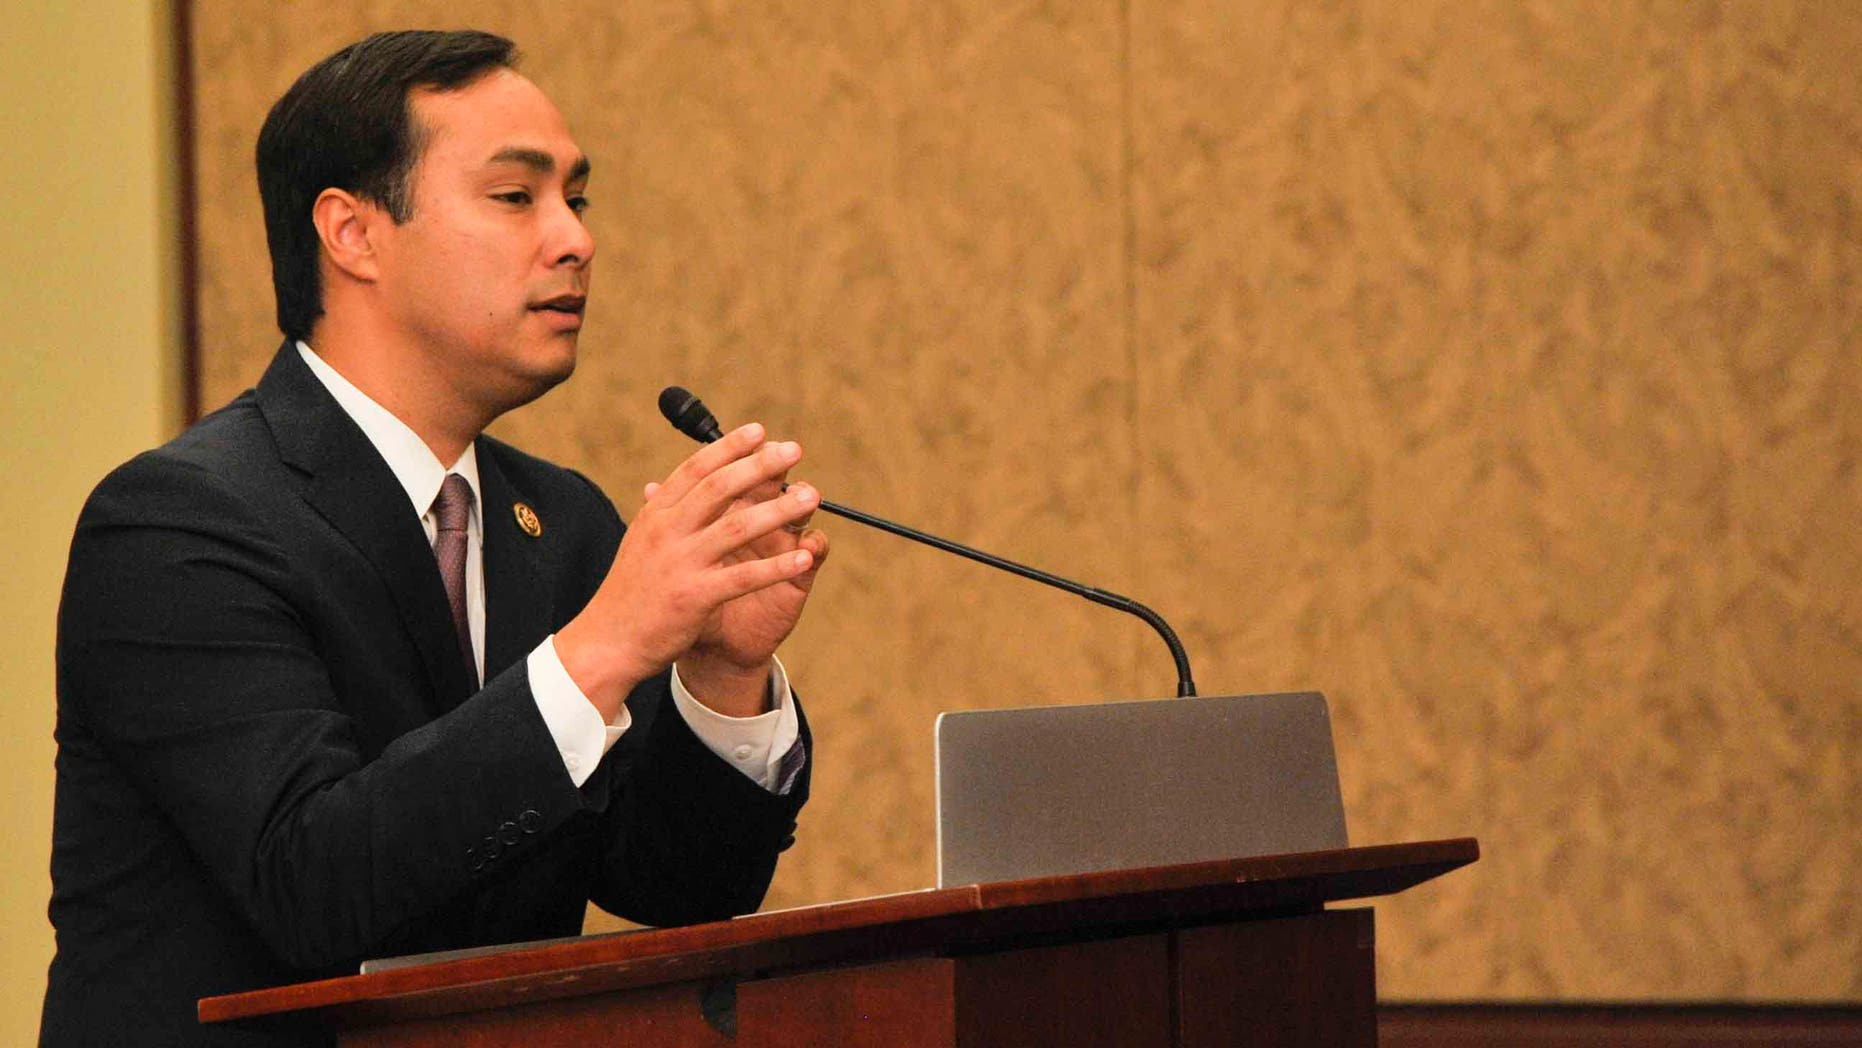 """WASHINGTON, DC- SEPTEMBER 30:  Representative Joaquin Castro(D-TX) speaks during a private screening of """"Food Chains"""" in the Capitol Visitors Center on September 30, 2015 in Washington, DC.   (Photo by Kris Connor/Getty Images for """"Food Chains"""")"""